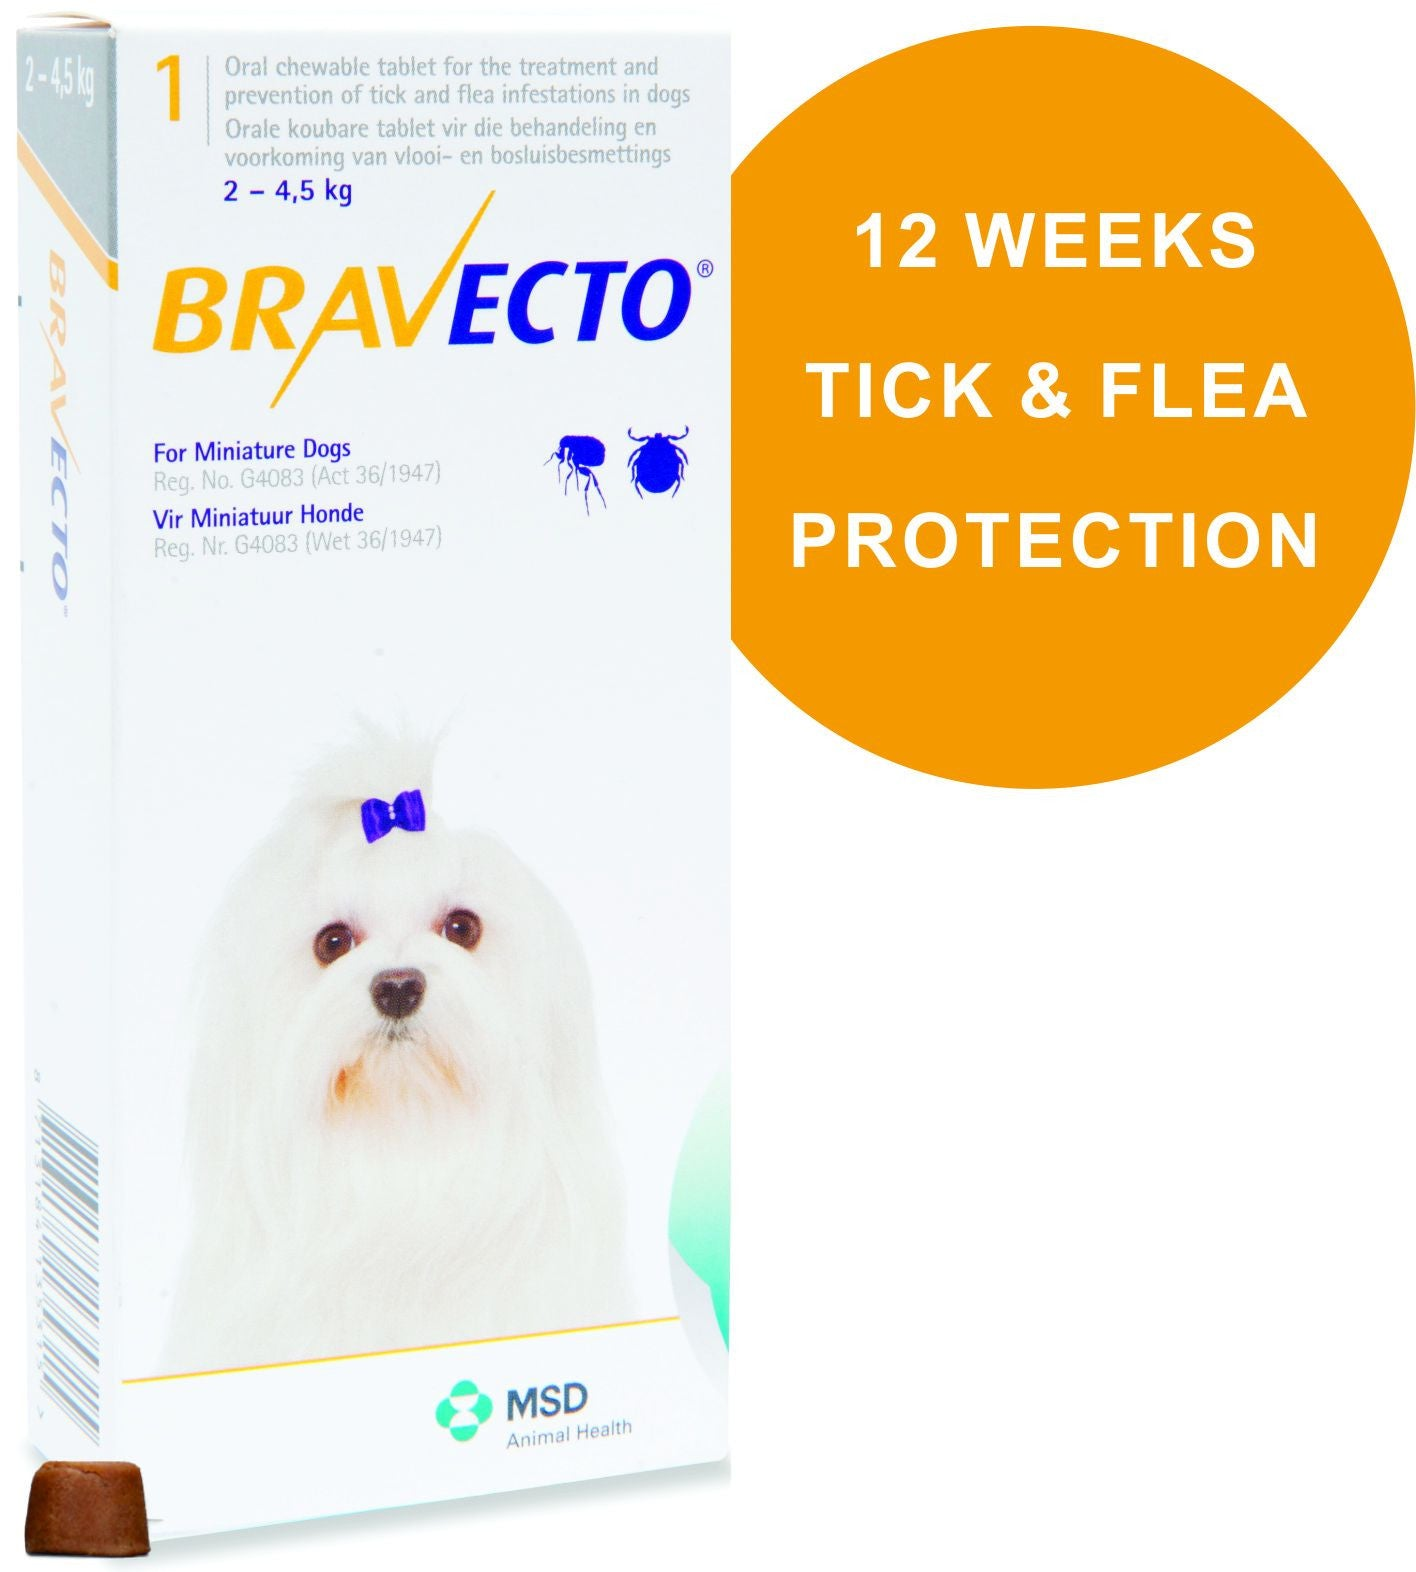 Bravecto tick and flea treatment chewable tablet for dogs